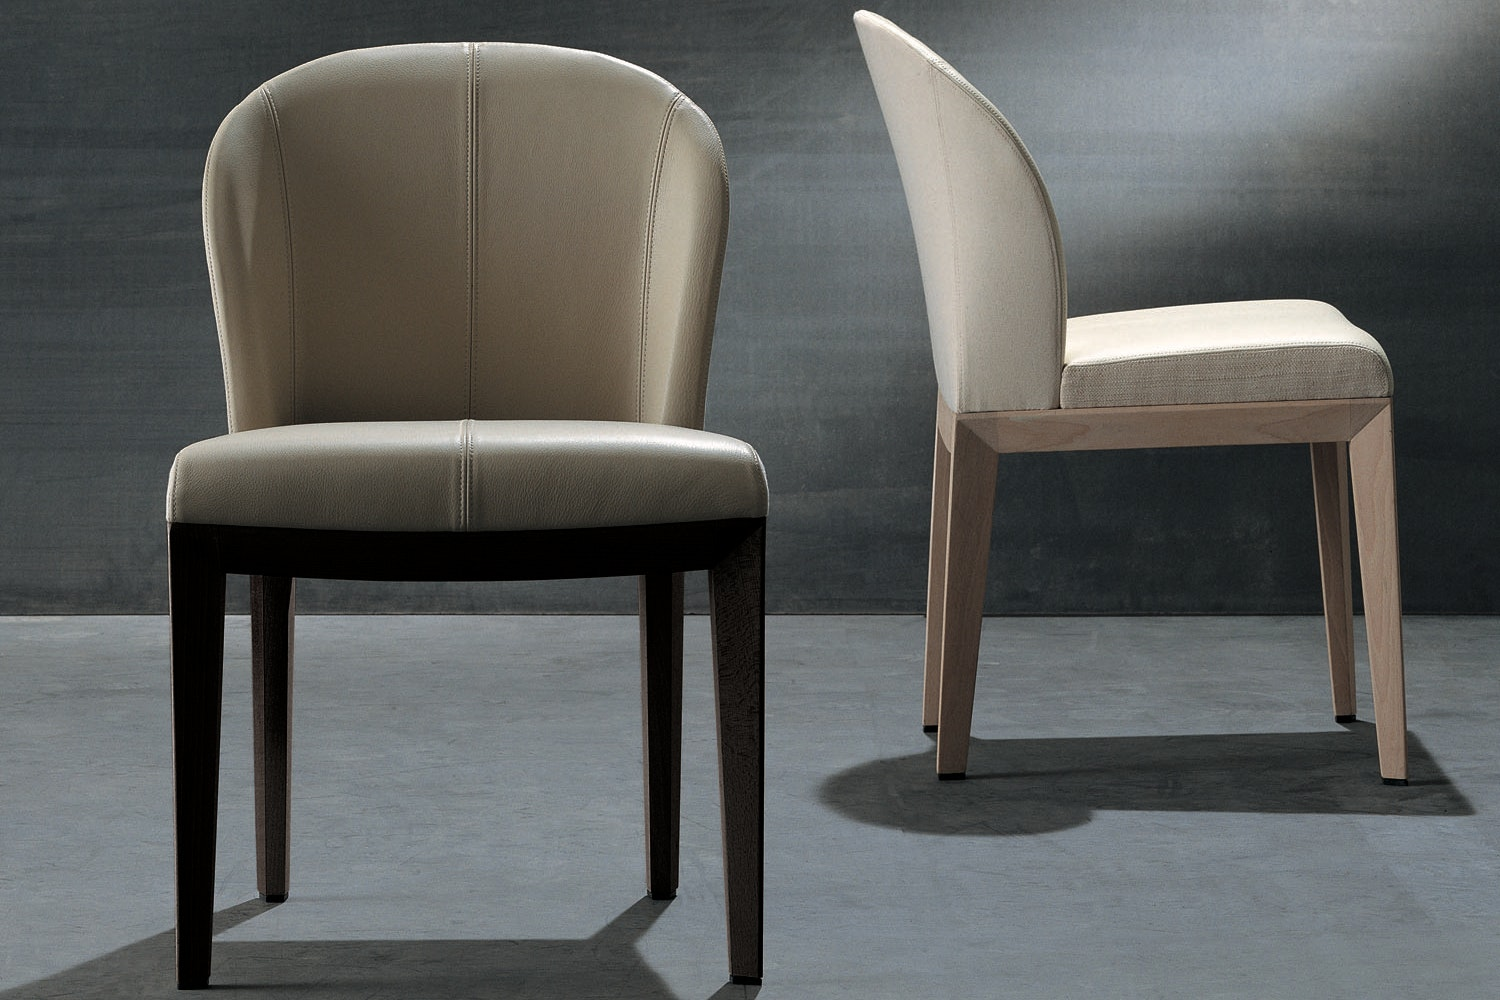 Normal Chair by Massimo Scolari for Giorgetti